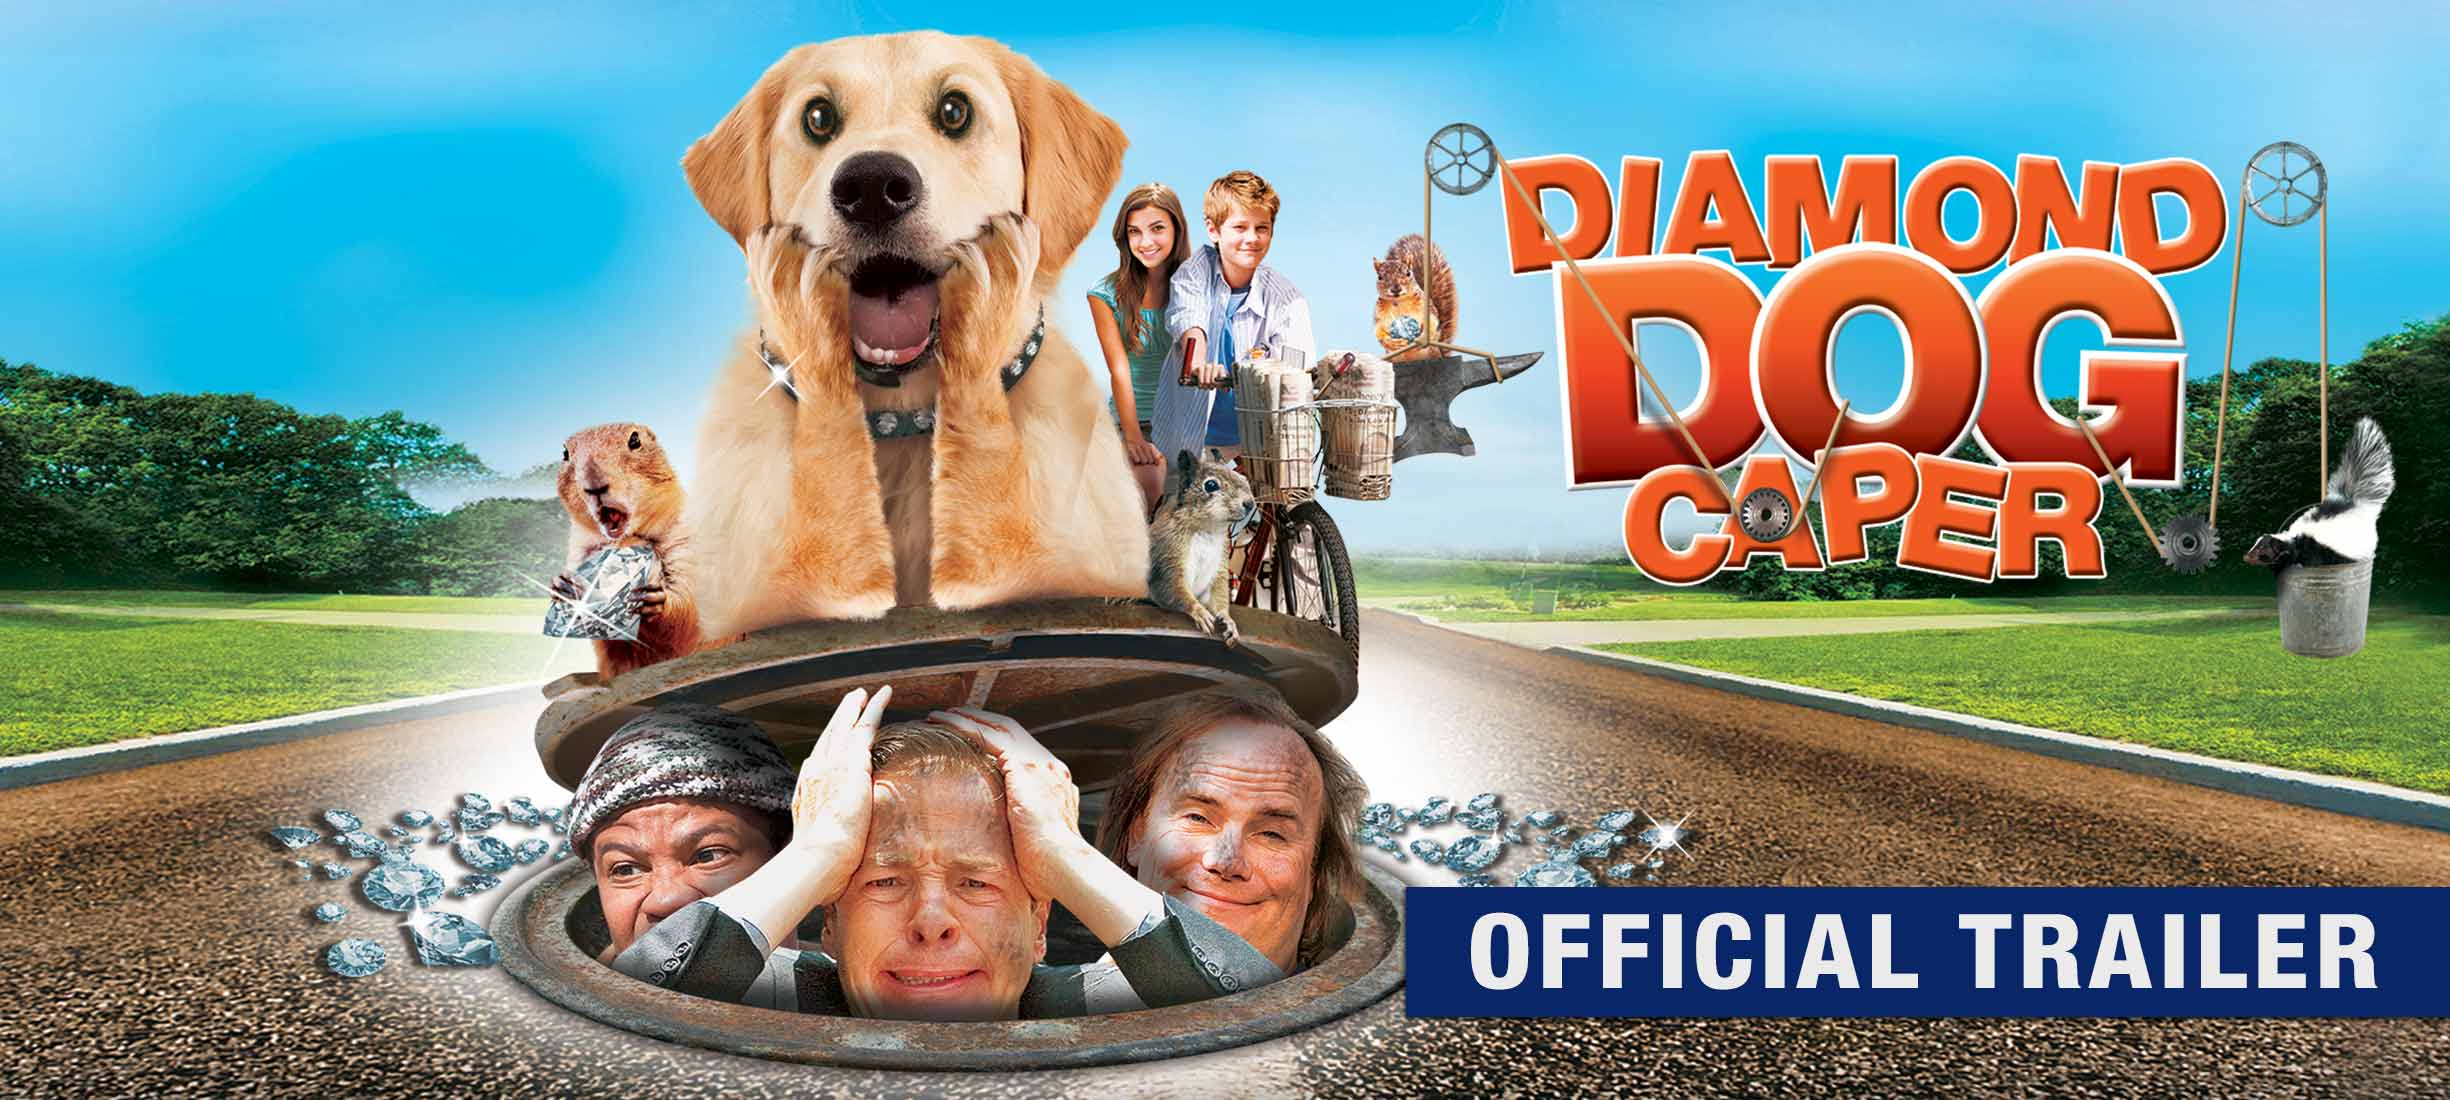 The Diamond Dog Caper: Trailer